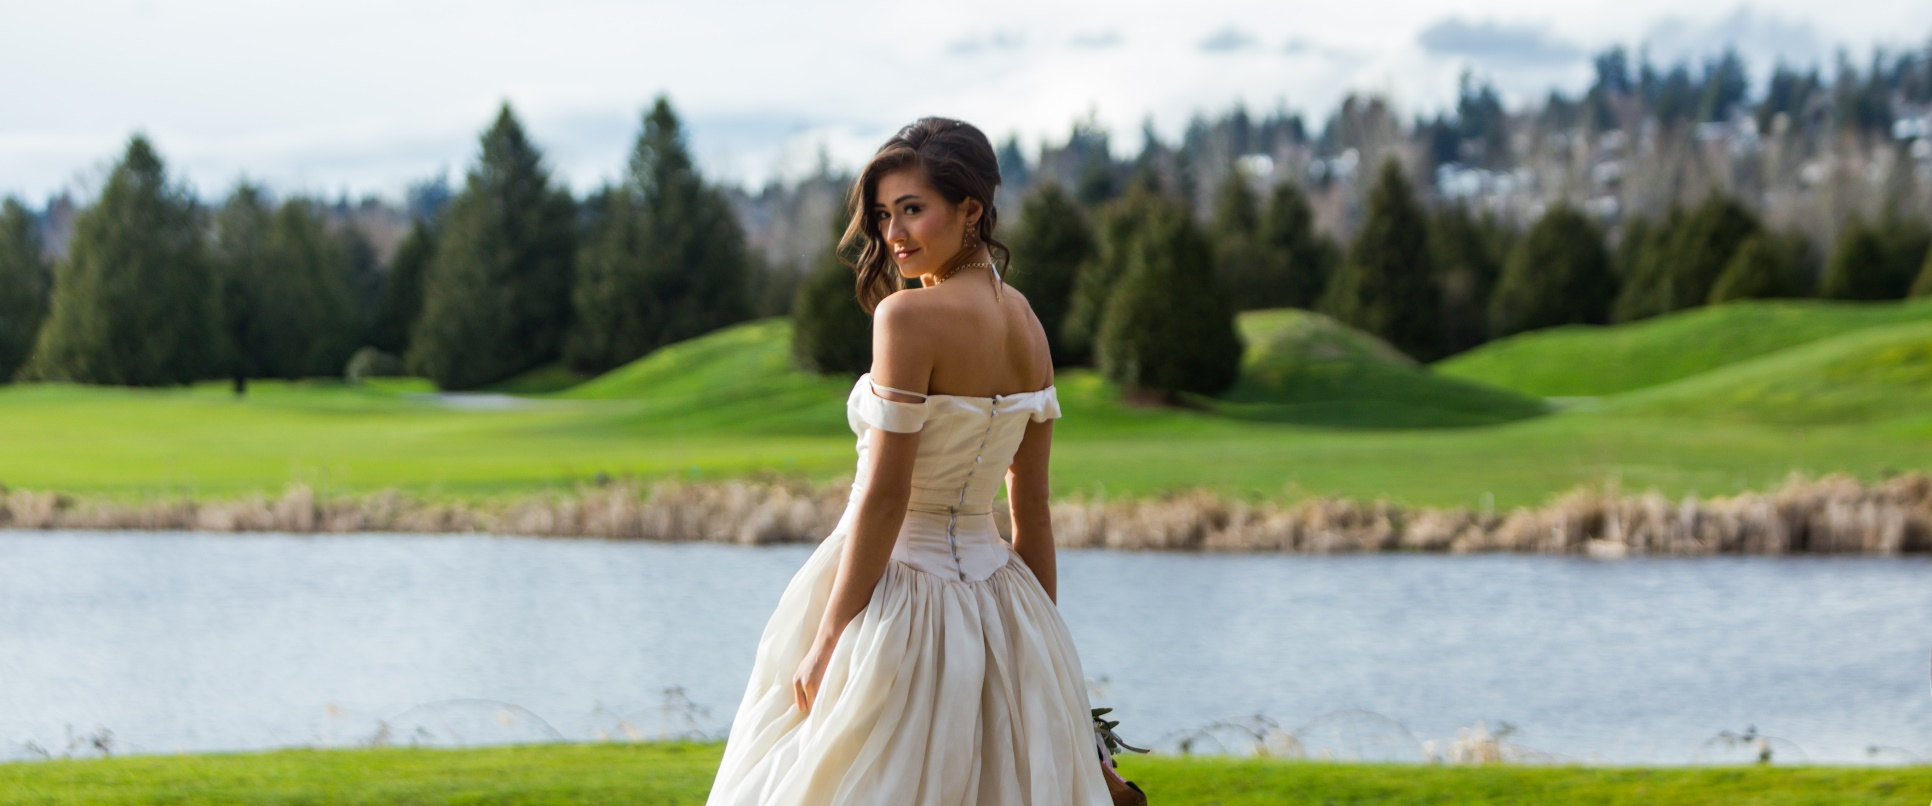 Bride posing for wedding photos overlooking the lake at the Golf Course